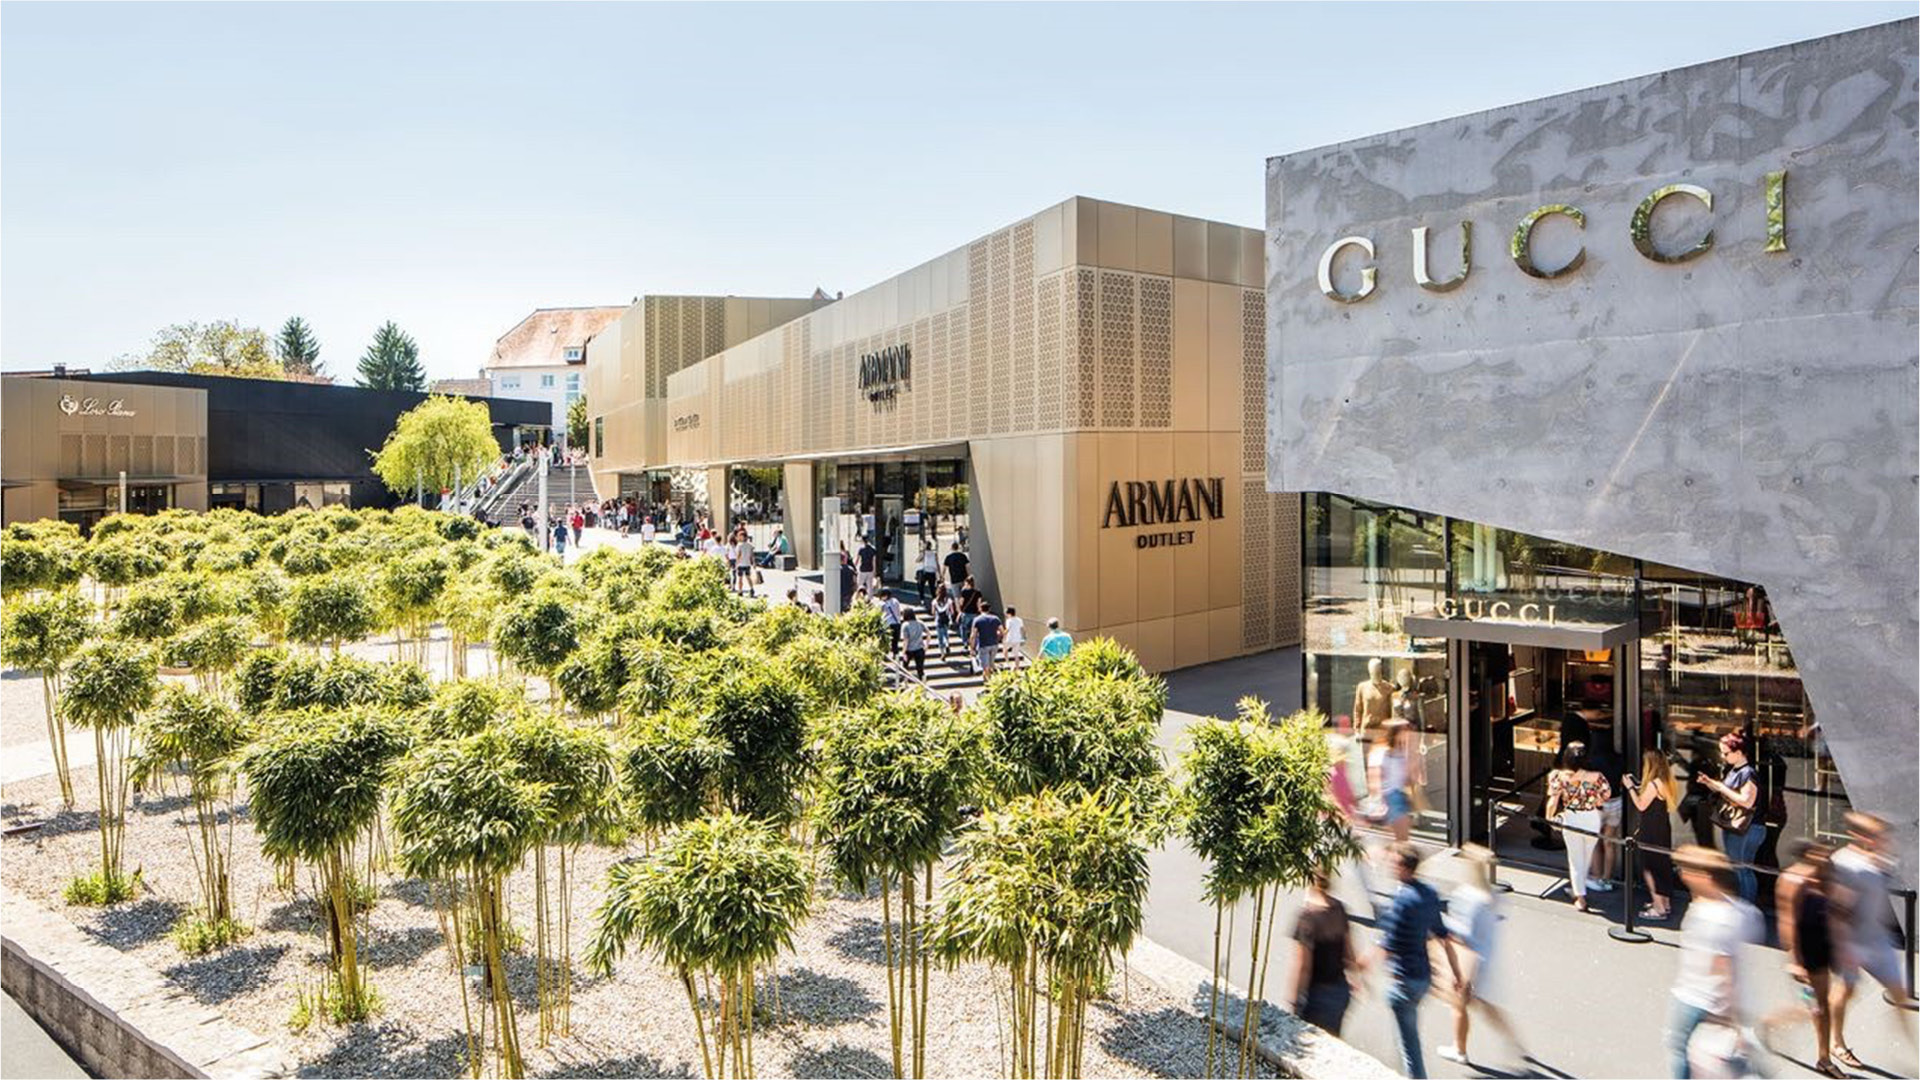 Germany's Outletcity Metzingen Voted As The Most Successful